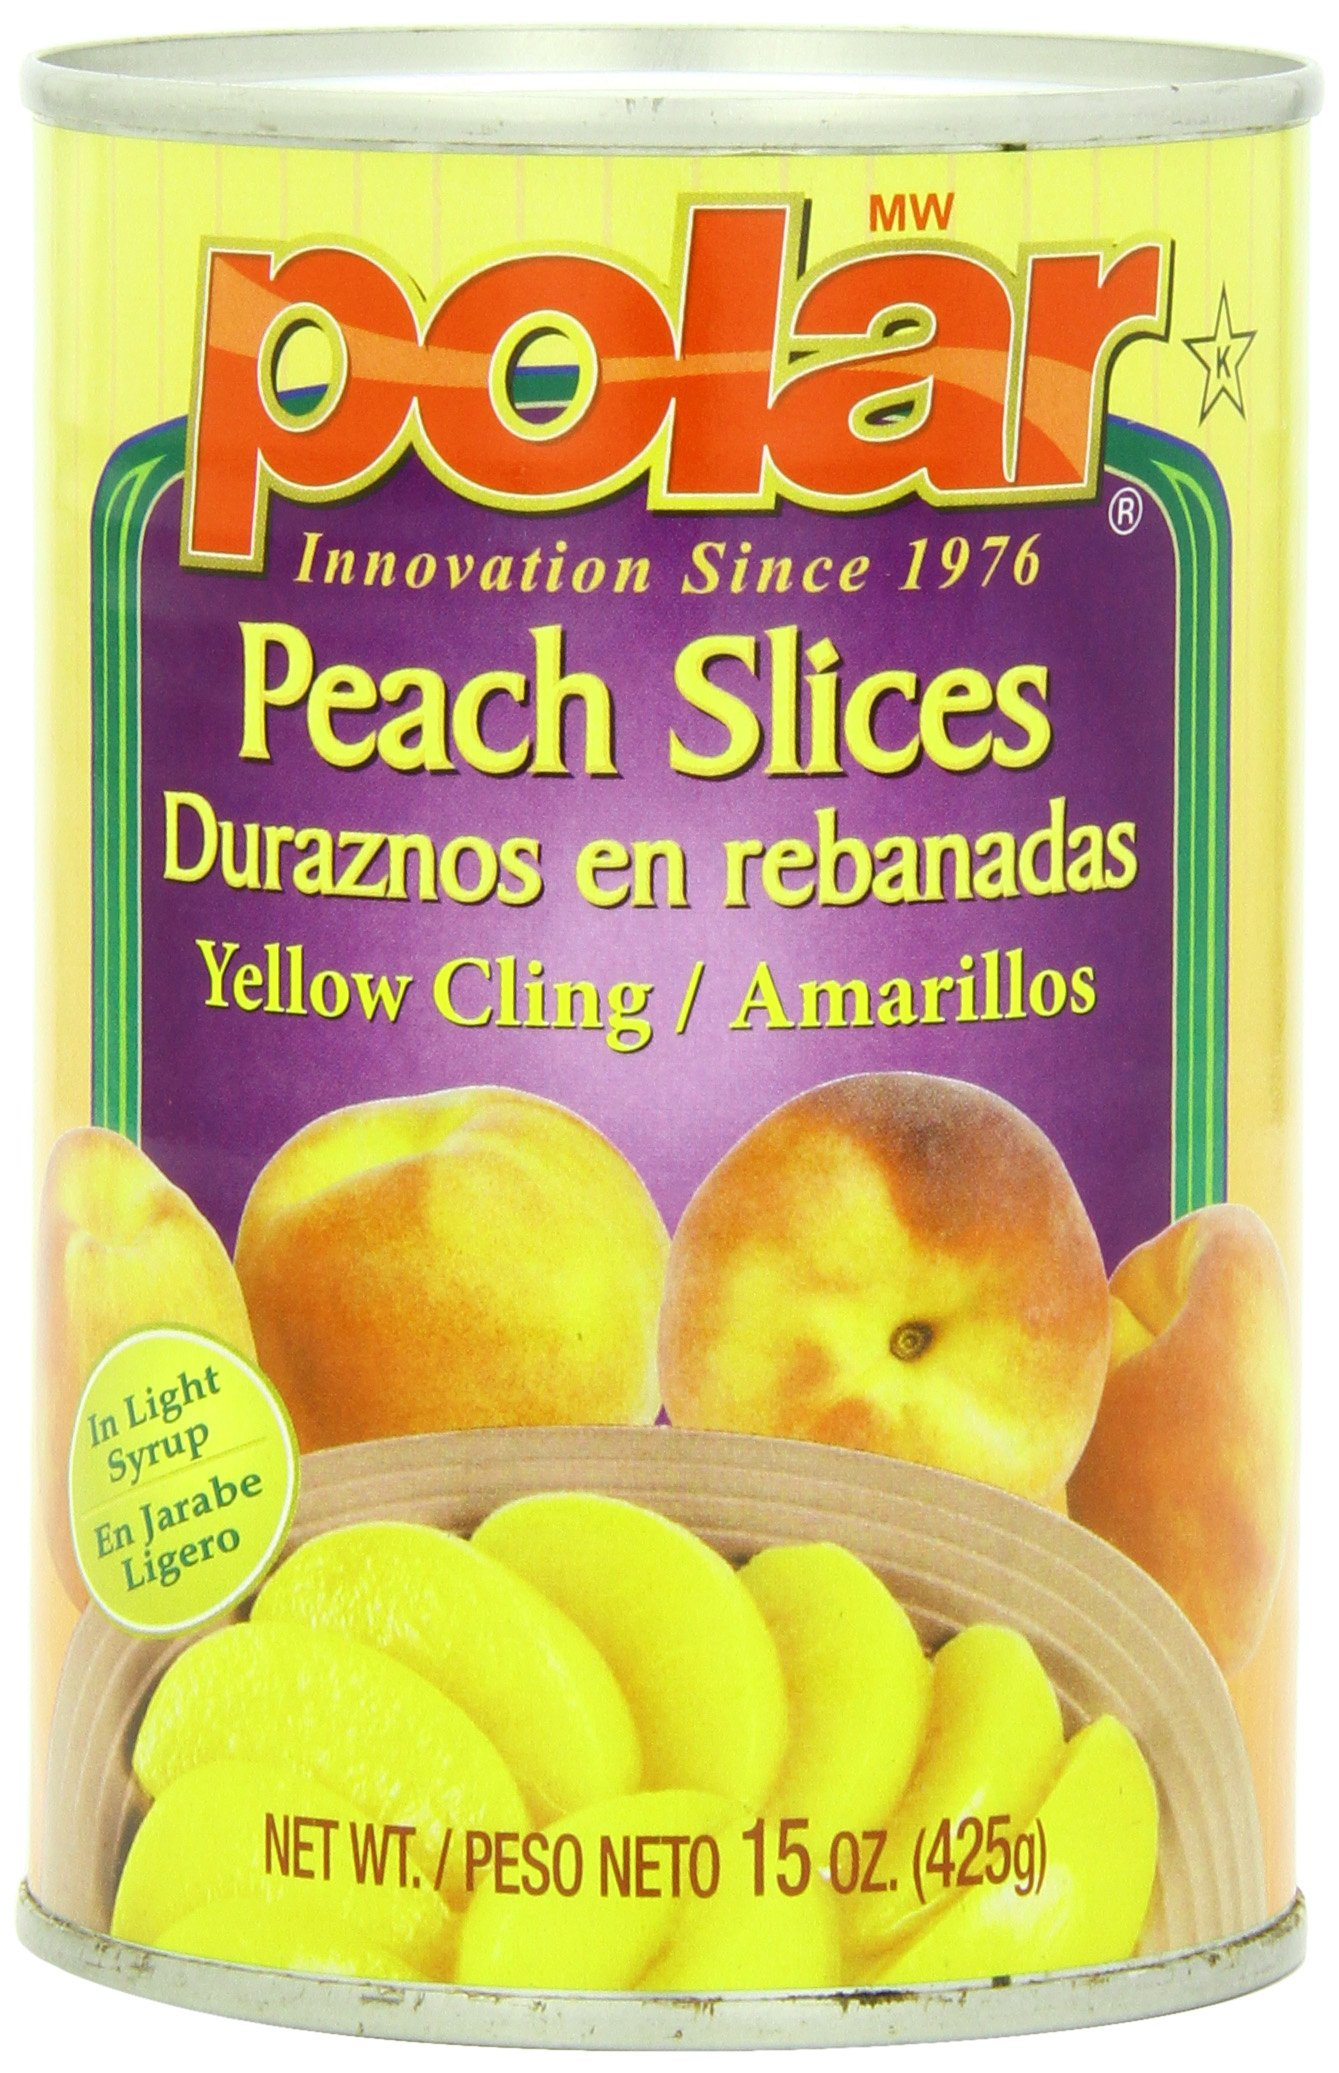 MW Polar Canned Fruit, Peach Slices in Light Syrup, 15 Ounce (Pack of 24)